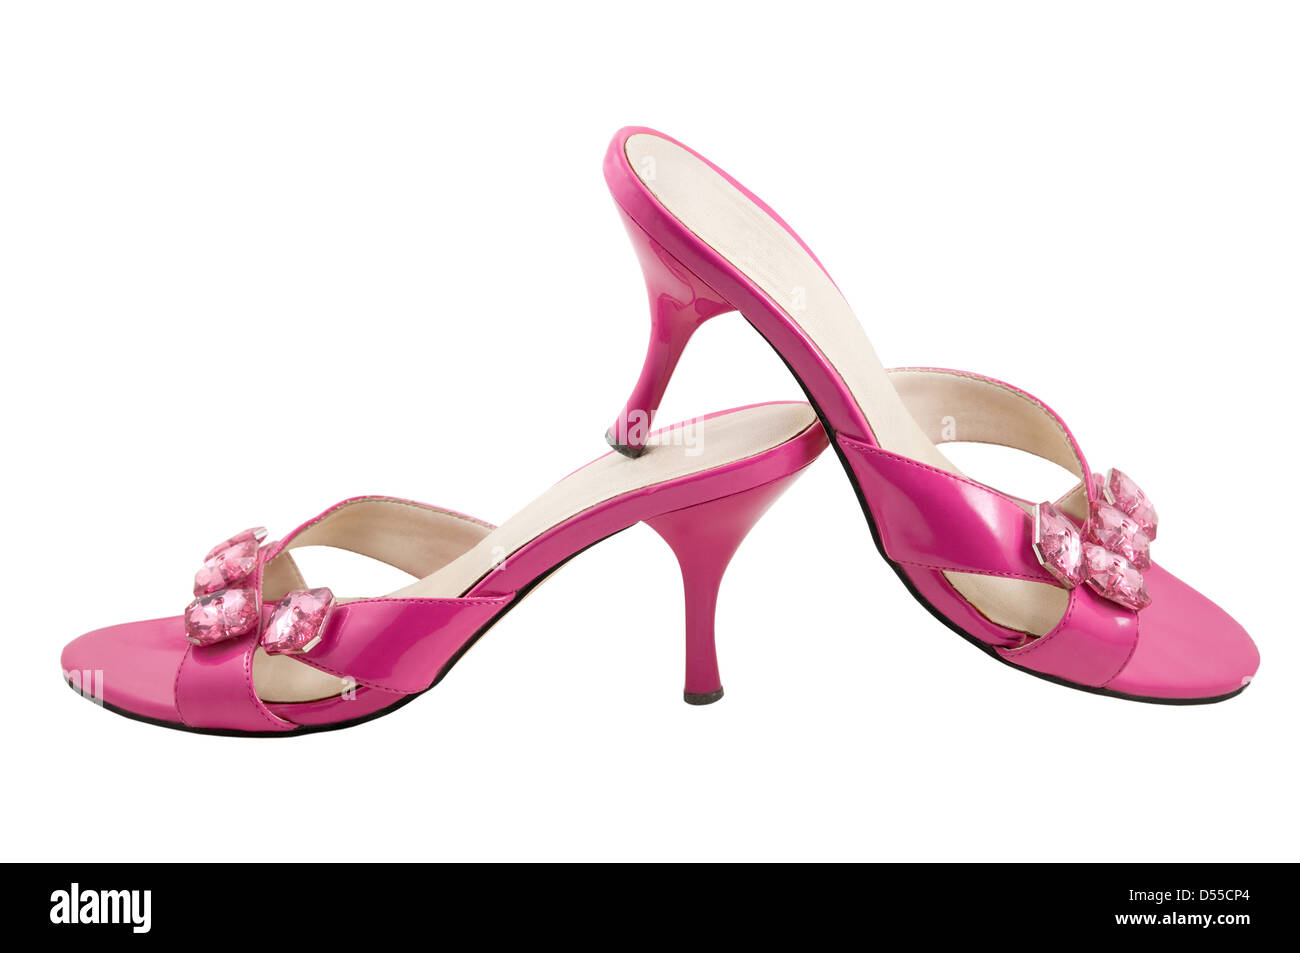 The two pink shoes are photographed on the white background - Stock Image